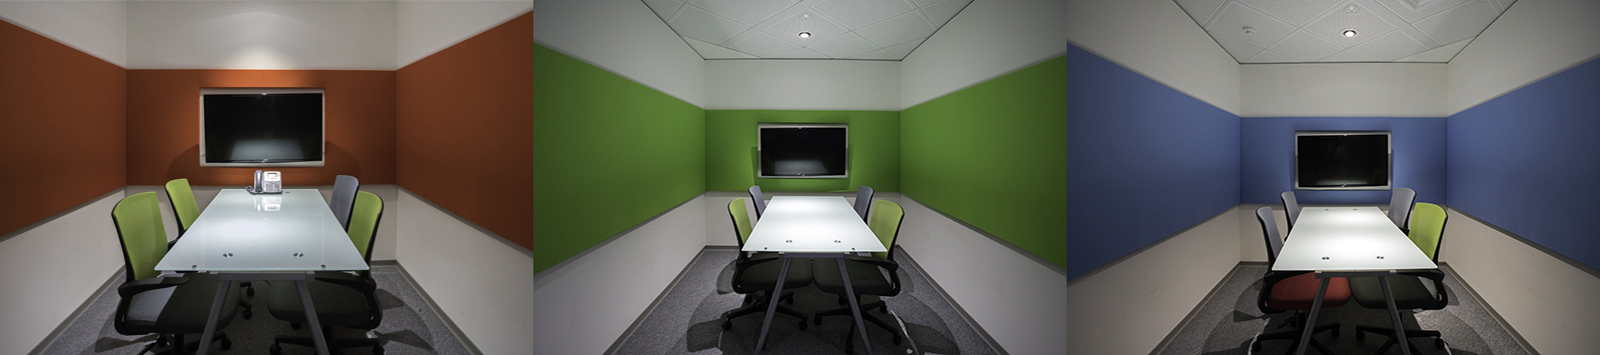 Acoustic Panels in Office Project